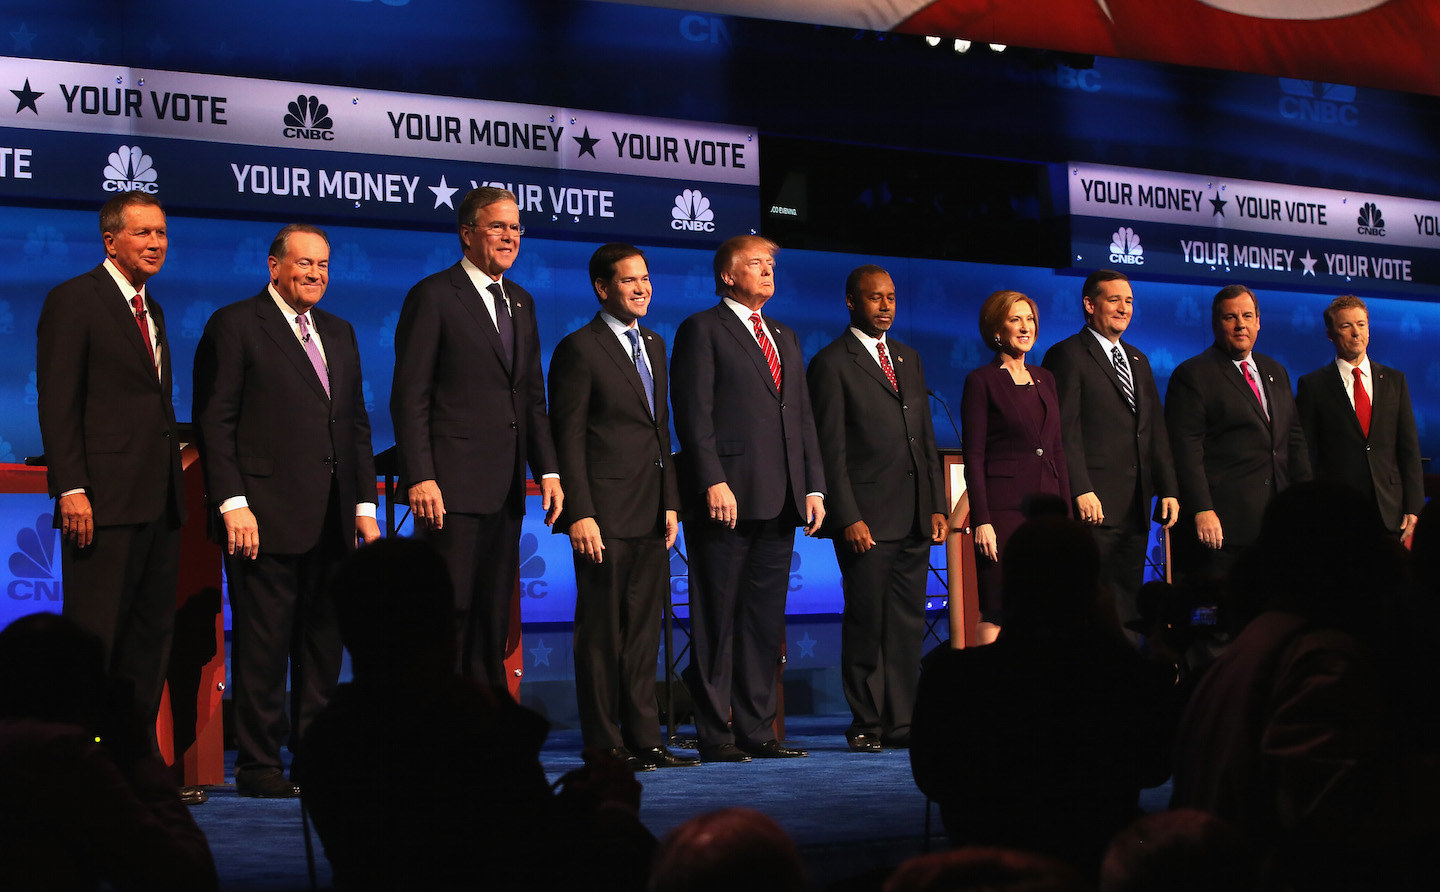 BOULDER, CO - OCTOBER 28: Presidential candidates Ohio Governor John Kasich (L-R), Mike Huckabee, Jeb Bush, Sen. Marco Rubio (R-FL), Donald Trump, Ben Carson, Carly Fiorina, Ted Cruz (R-TX), New Jersey Governor Chris Christie, and Sen. Rand Paul (R-KY) take the stage at the CNBC Republican Presidential Debate at University of Colorados Coors Events Center October 28, 2015 in Boulder, Colorado. Fourteen Republican presidential candidates are participating in the third set of Republican presidential debates. (Photo by Justin Sullivan/Getty Images)